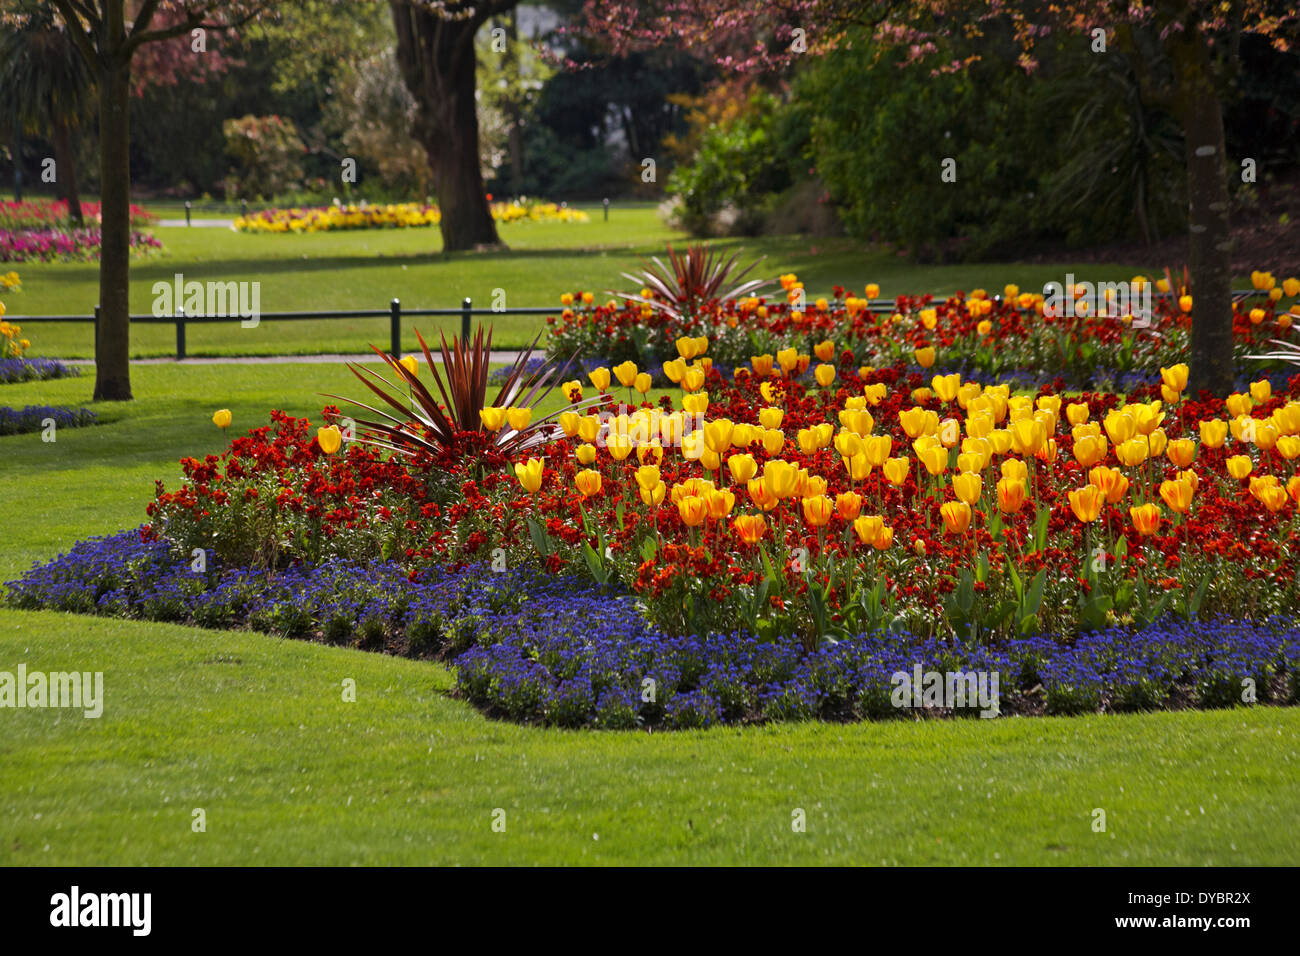 Colourful spring flower beds at bournemouth gardens in april stock colourful spring flower beds at bournemouth gardens in april mightylinksfo